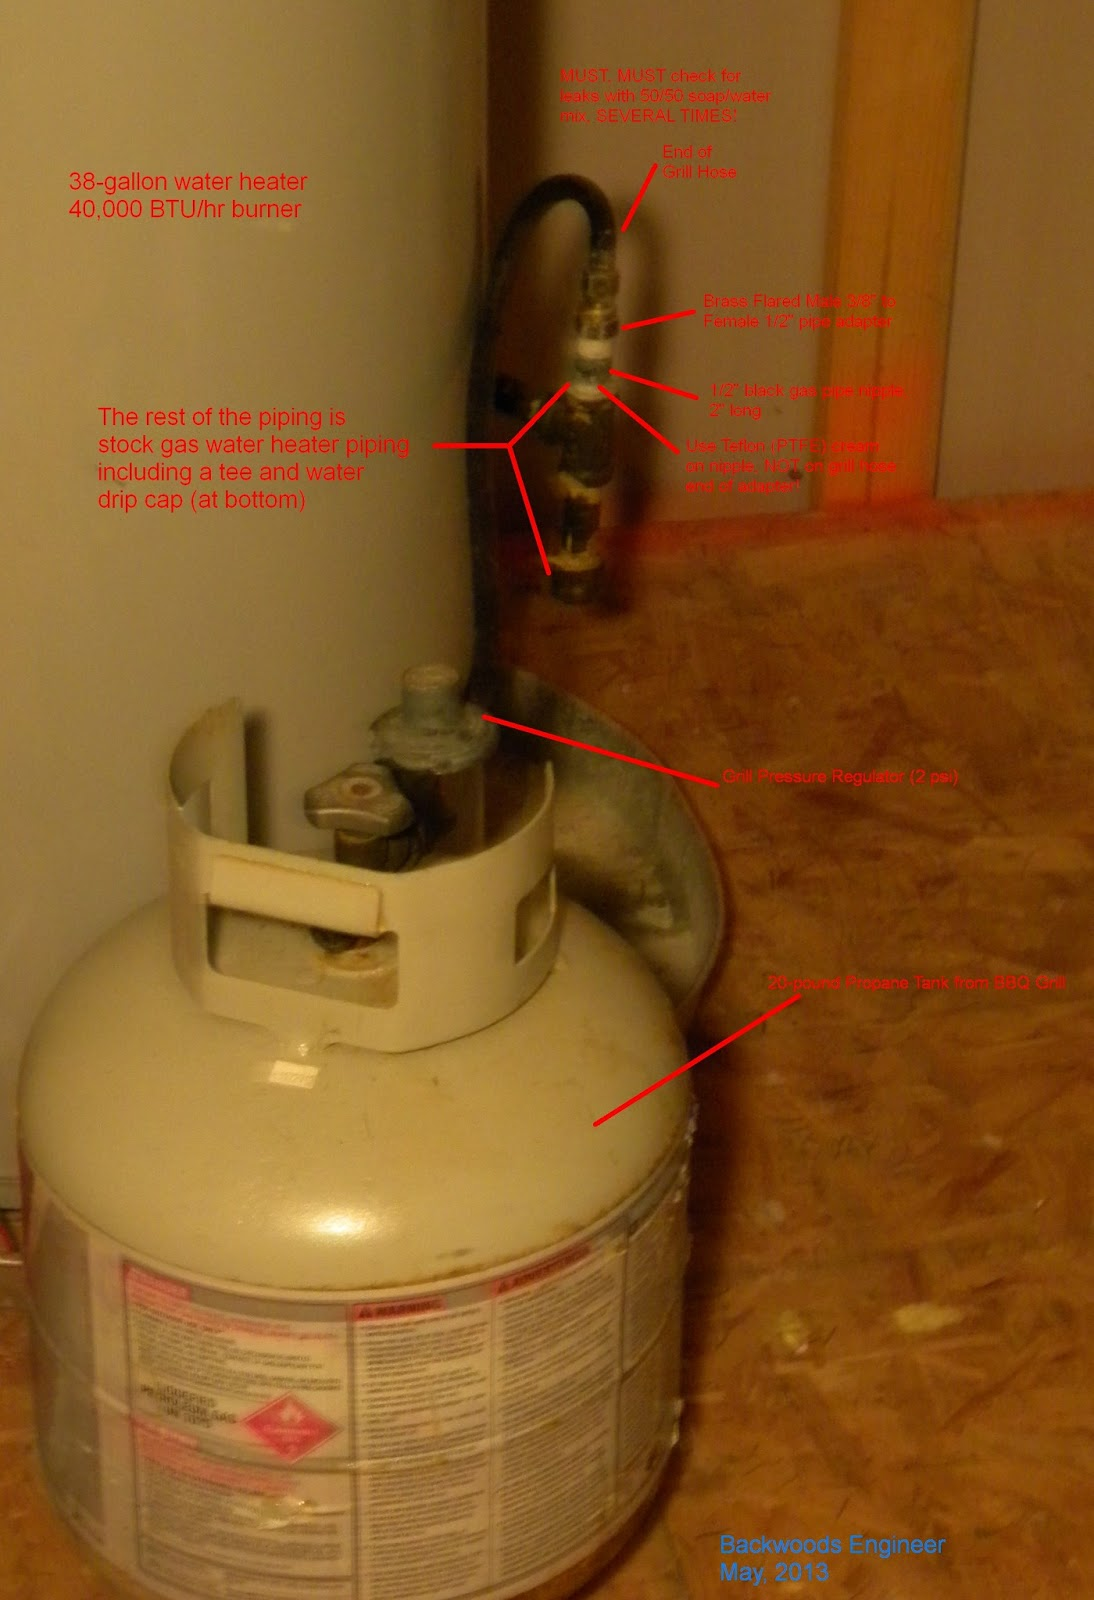 Hook Up Propane Tank To Water Heater